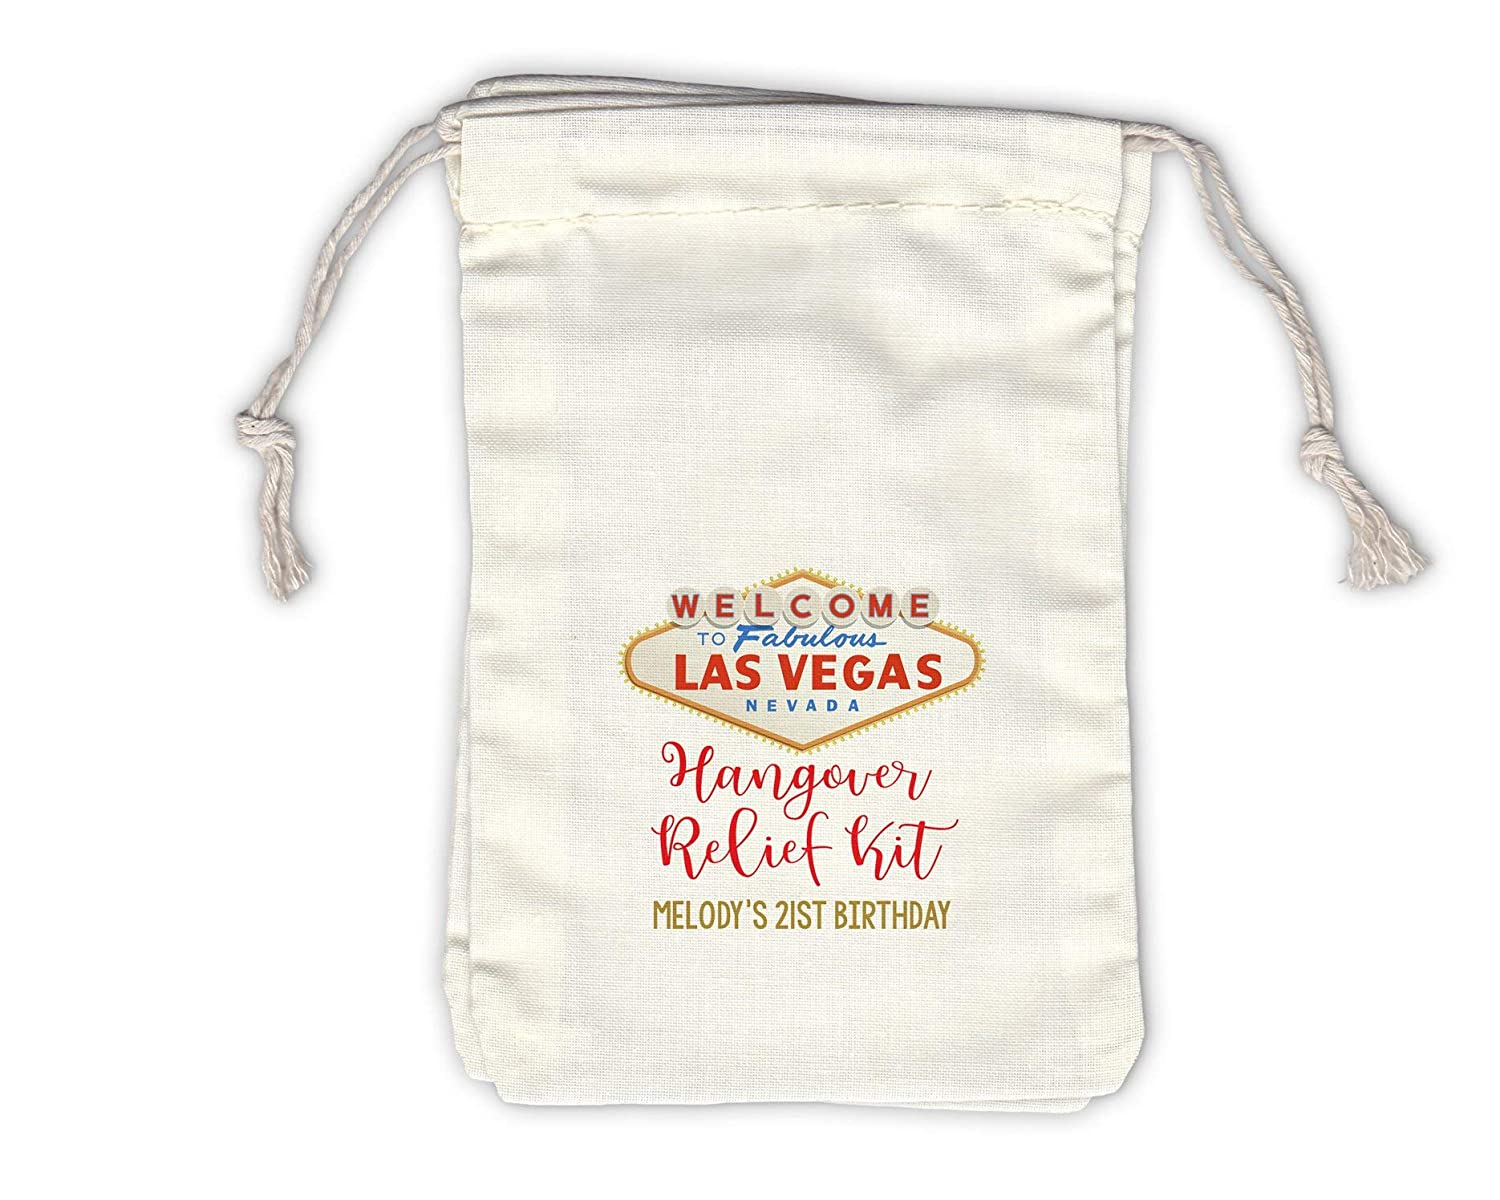 Las Vegas Hangover Relief Kit Favor Bags for Birthday, Bachelorette - Drawstring Fabric Pouches - Set of 12 (1048-HRC)